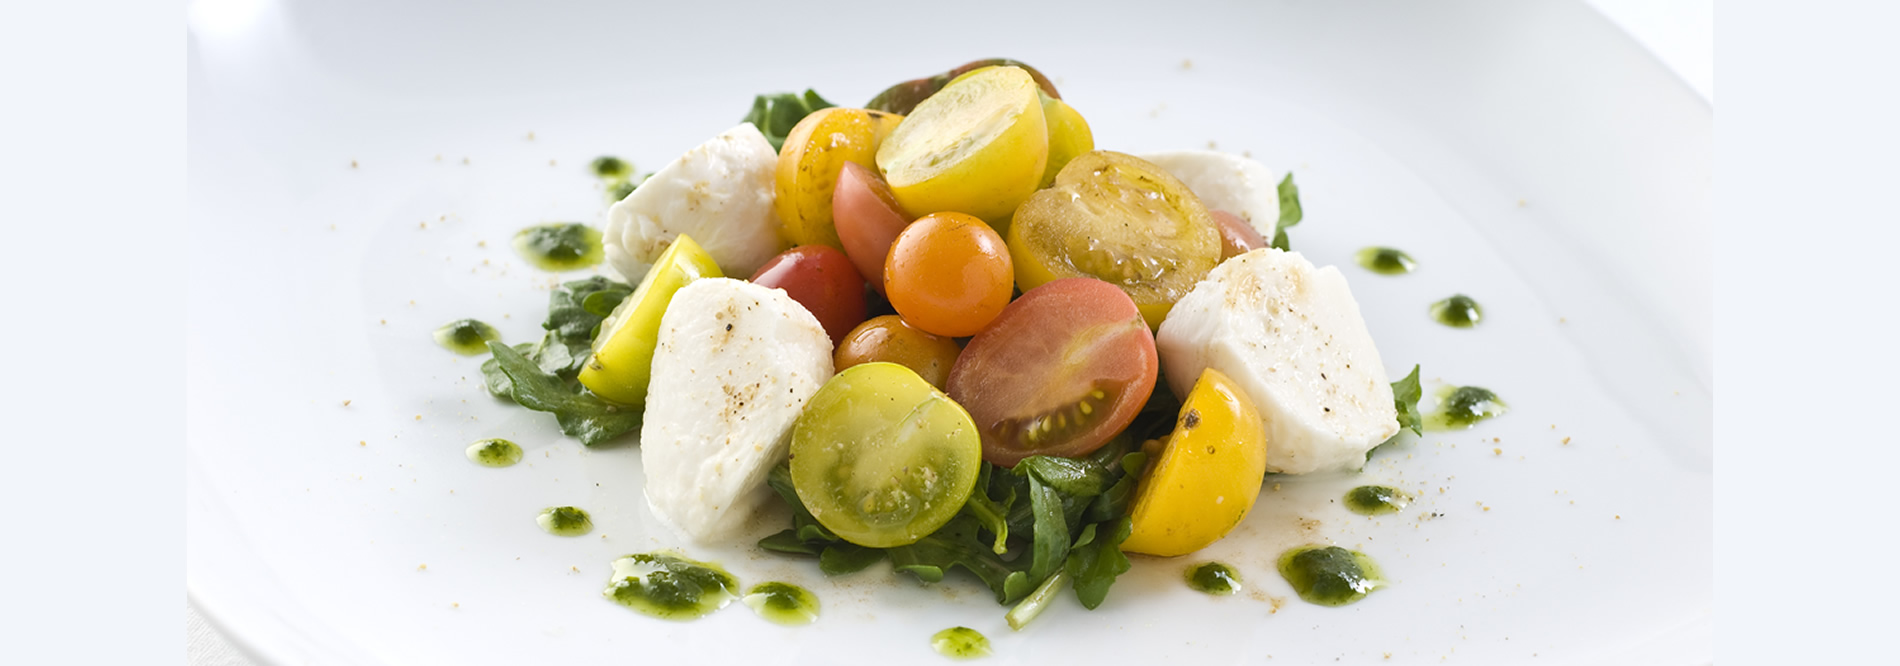 Arugula with mozzarella, heirloom cherry tomatoes and basil vinaigrette